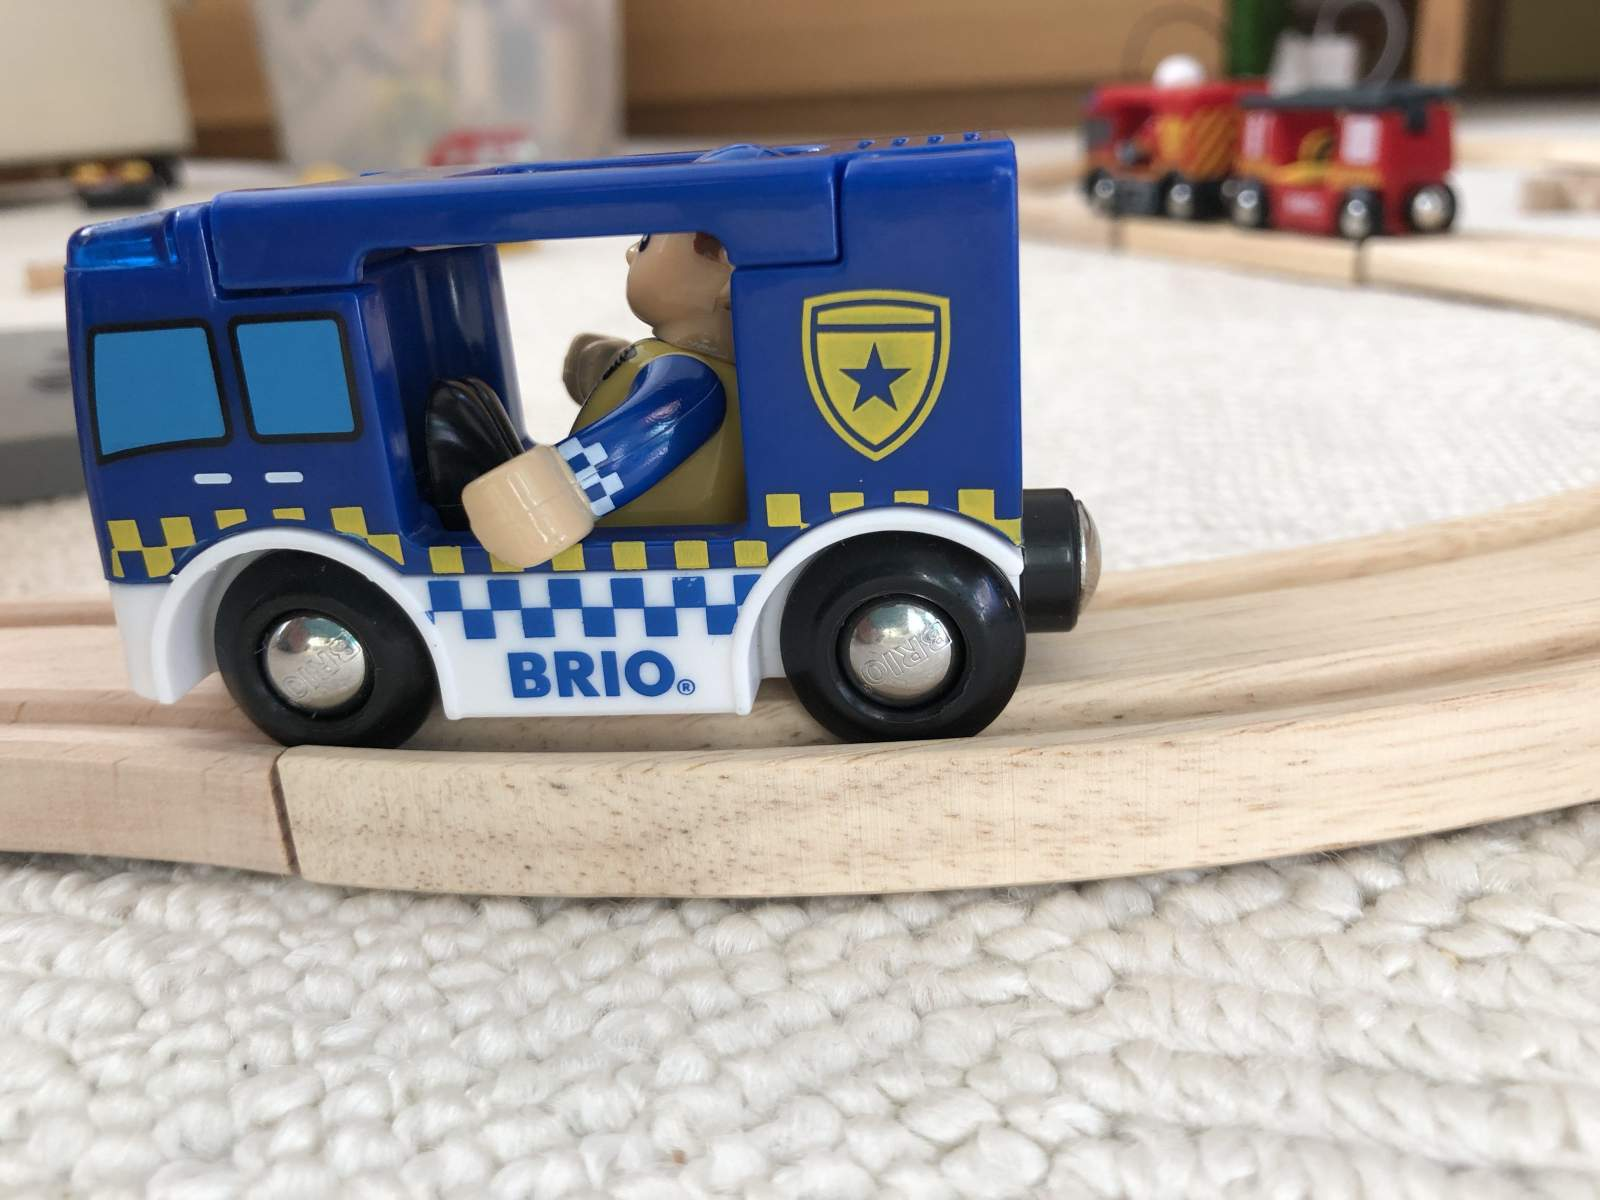 Brio police car on wooden track with fire engine train in background